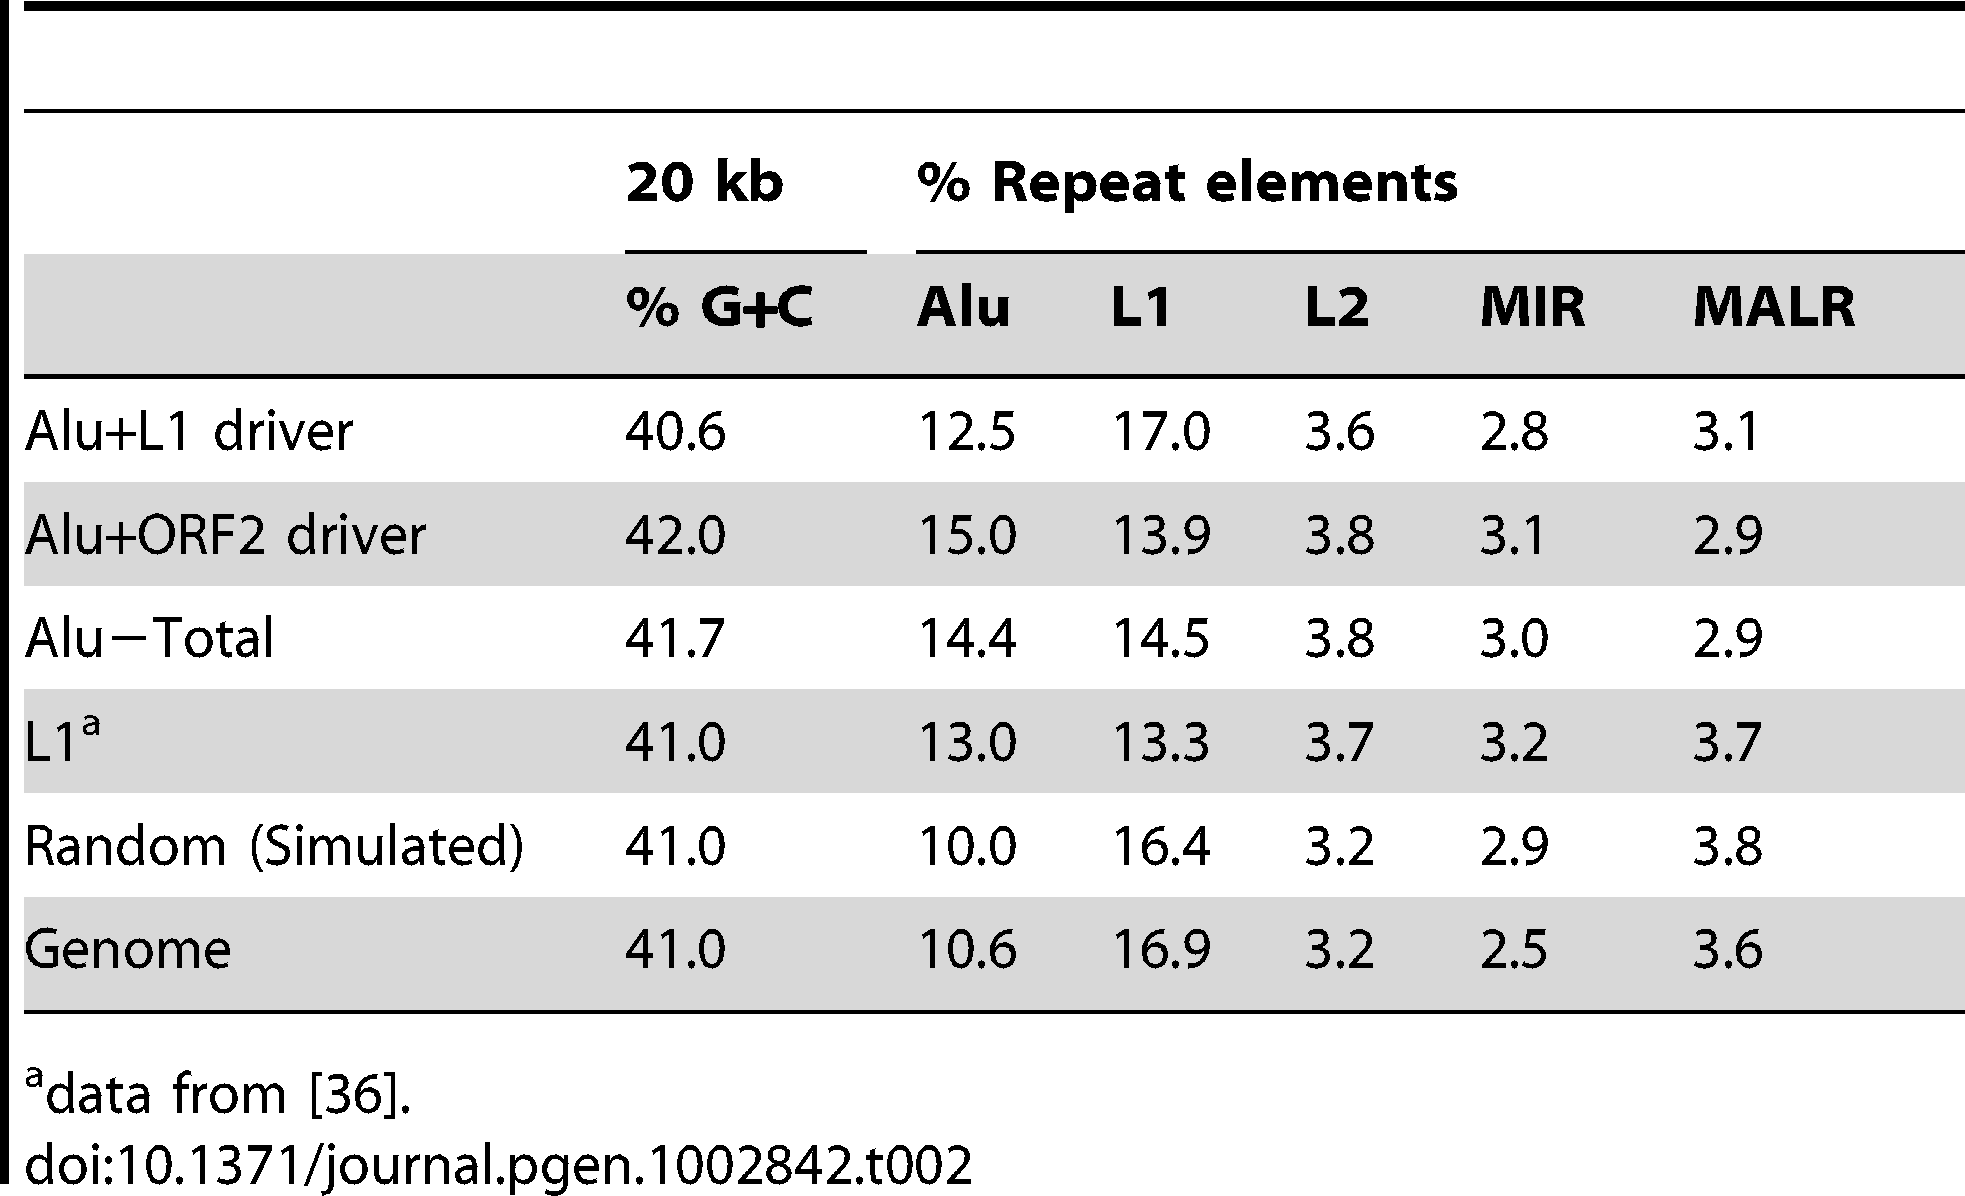 Percent G+C and repeat element content of Alu 20 kb pre-insertion loci.